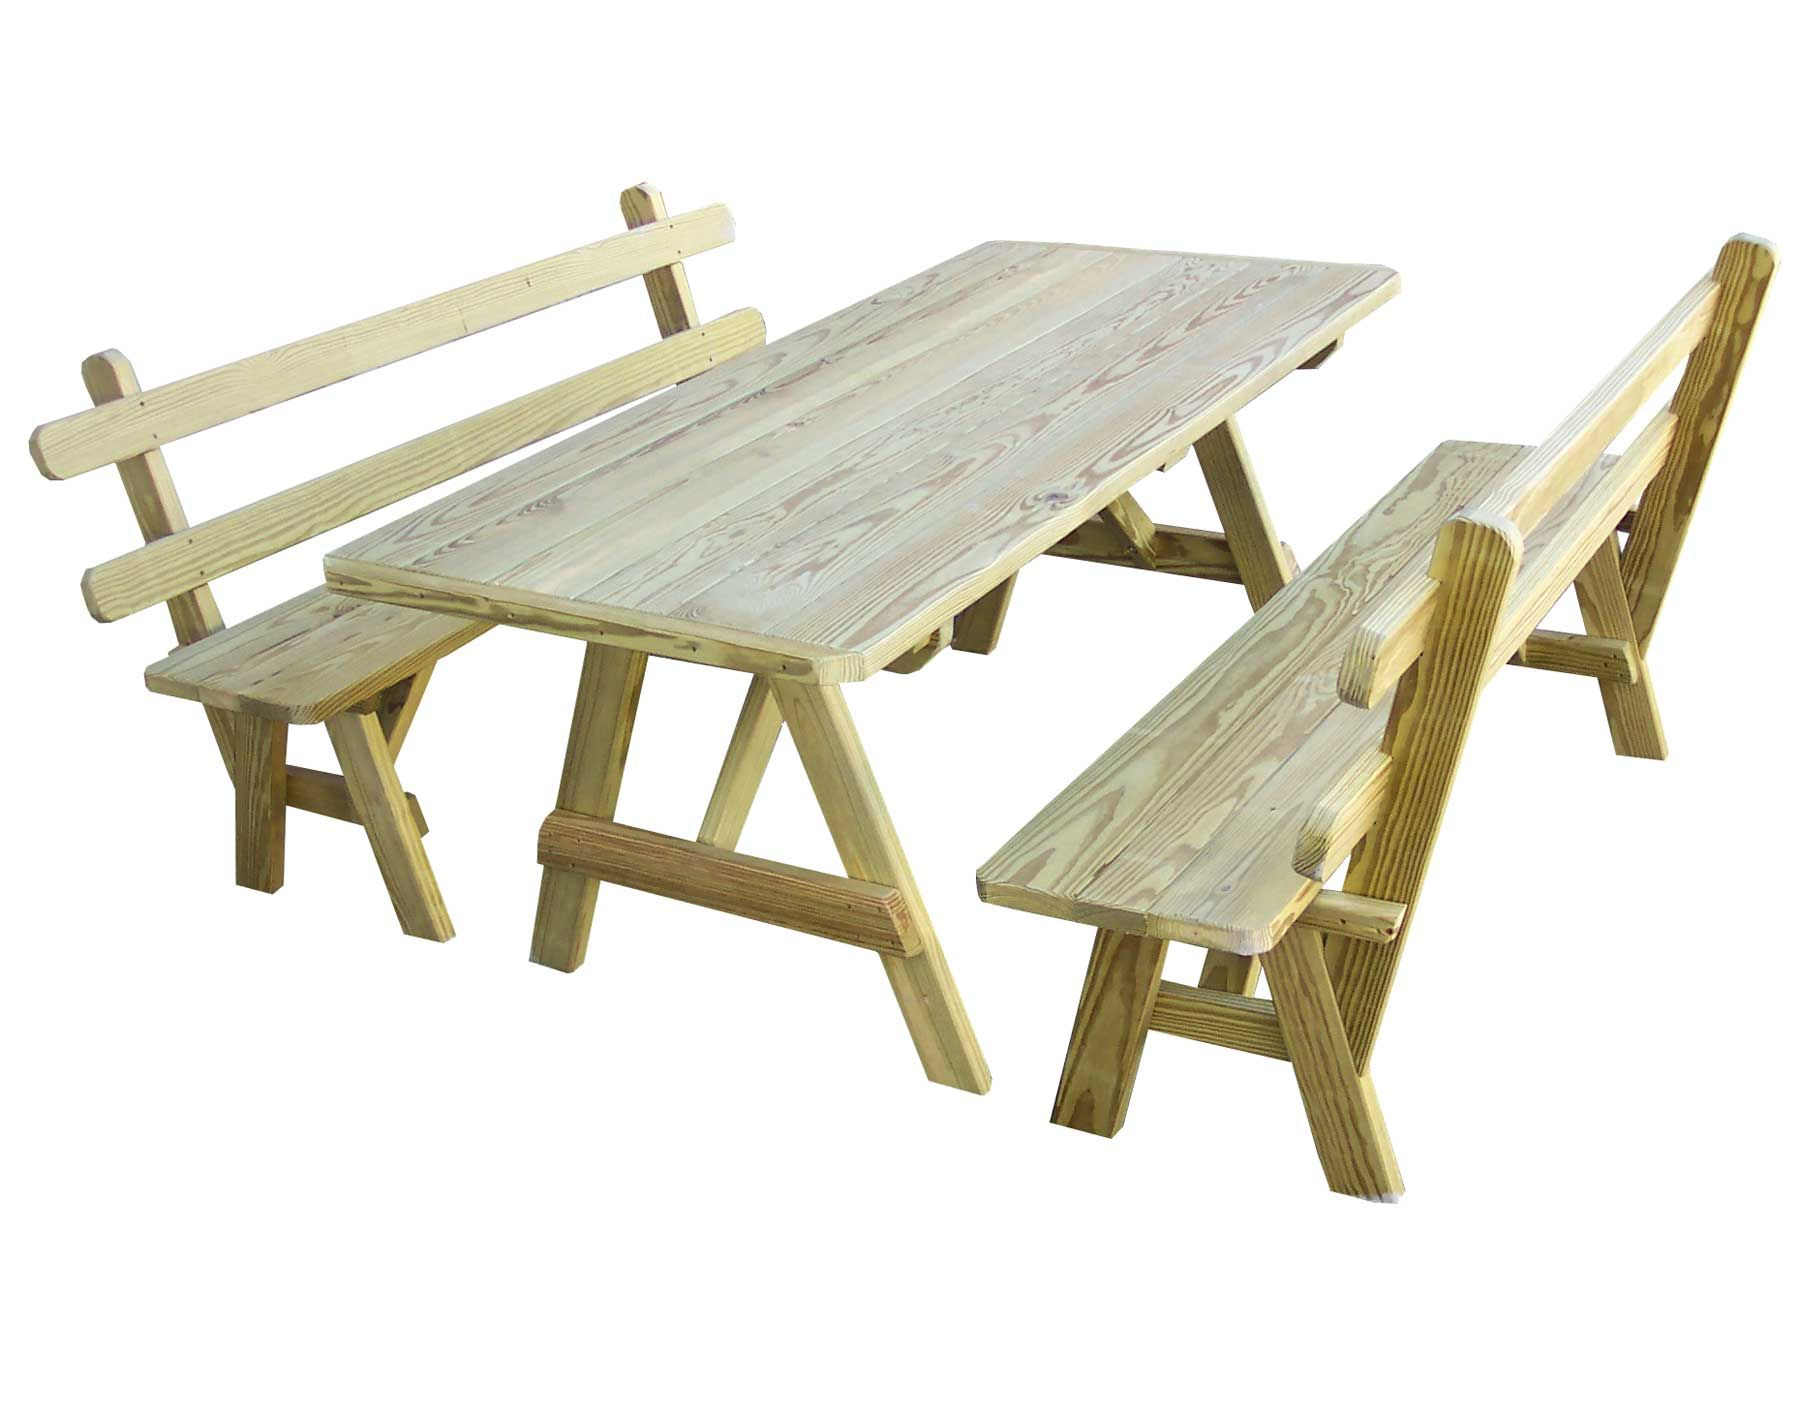 Garden And Patio Outdoor Cedar Wooden Picnic Table With Detached Benches With Back Ideas Picnic Table B Picnic Table Wooden Picnic Tables Picnic Table Bench